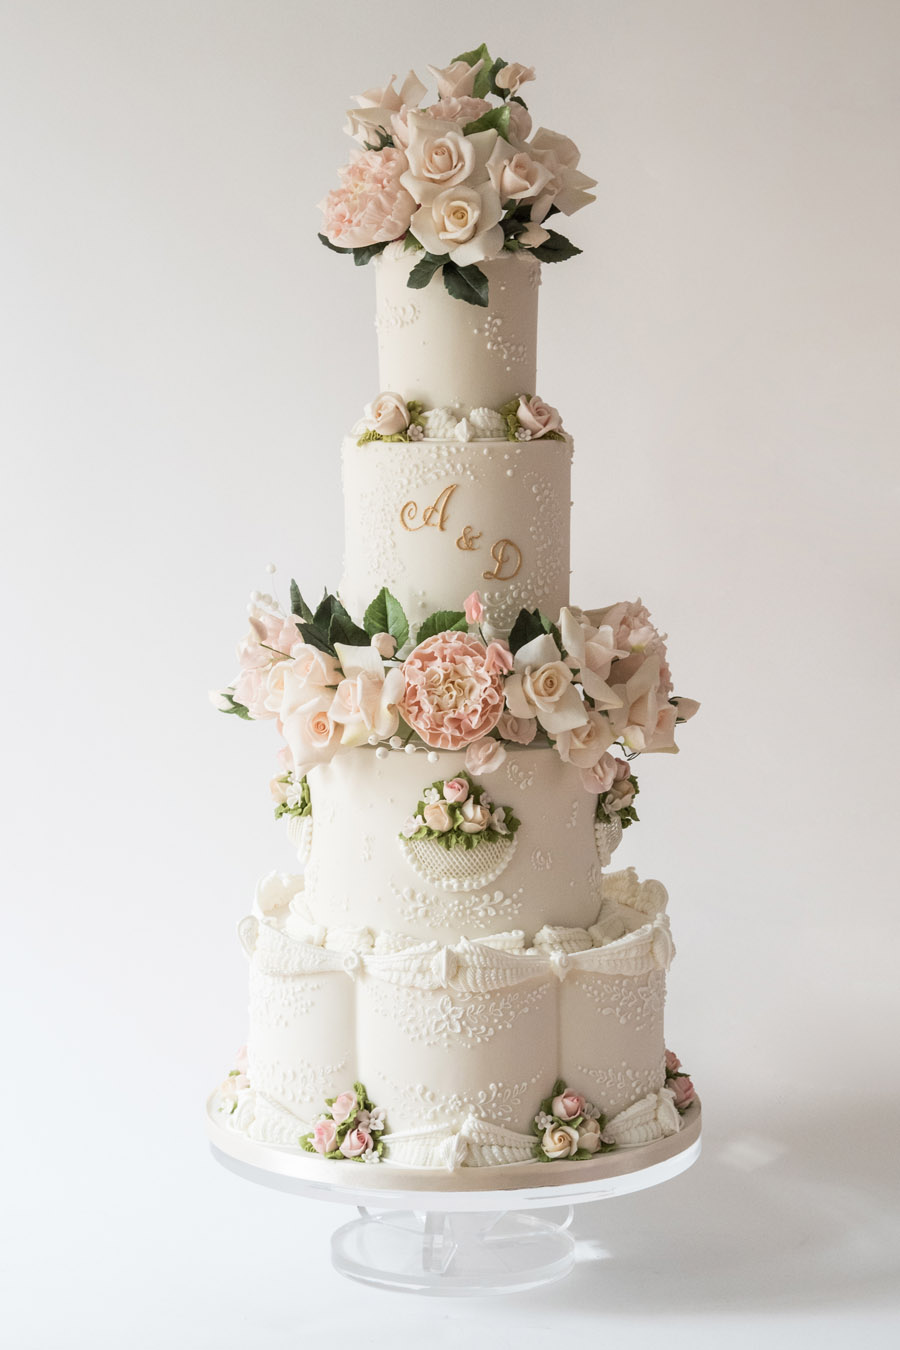 Beautiful wedding cakes by The Frostery - trends and ideas for 2019 (24)